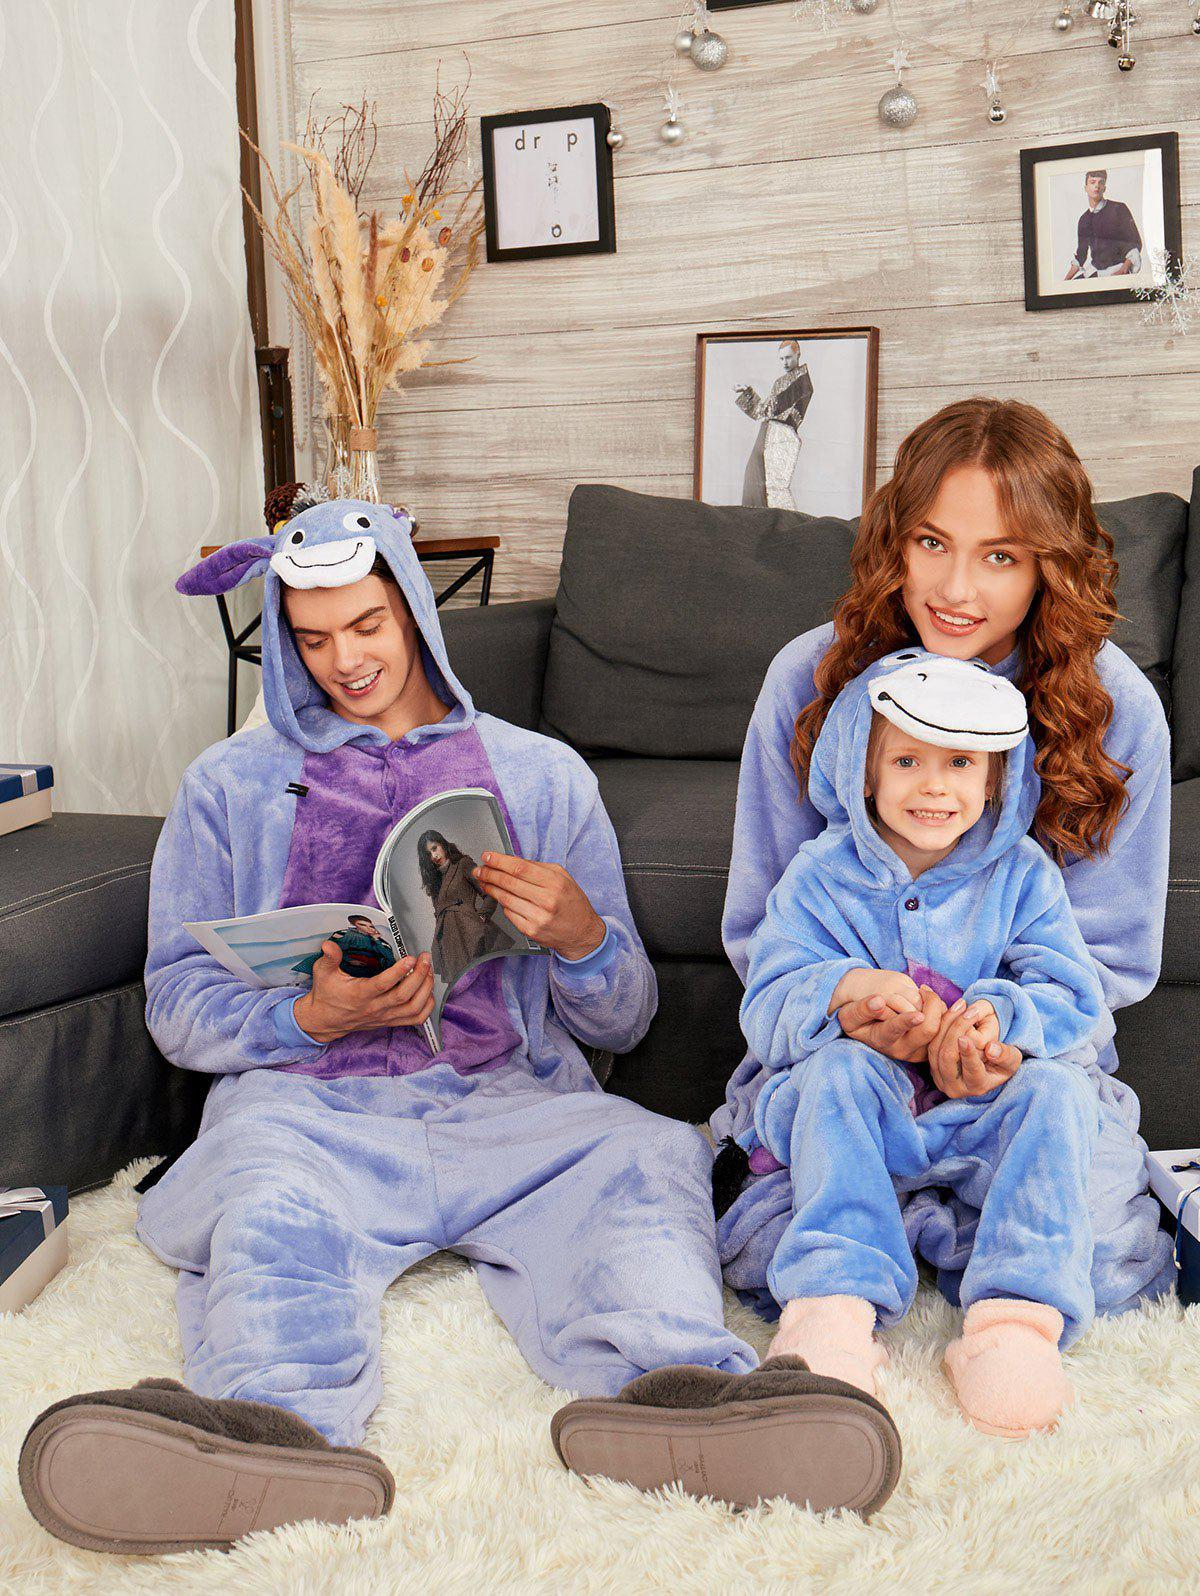 Donkey Animal Onesie Matching Family Christmas Pajama Set - BLUISH VIOLET KID 130